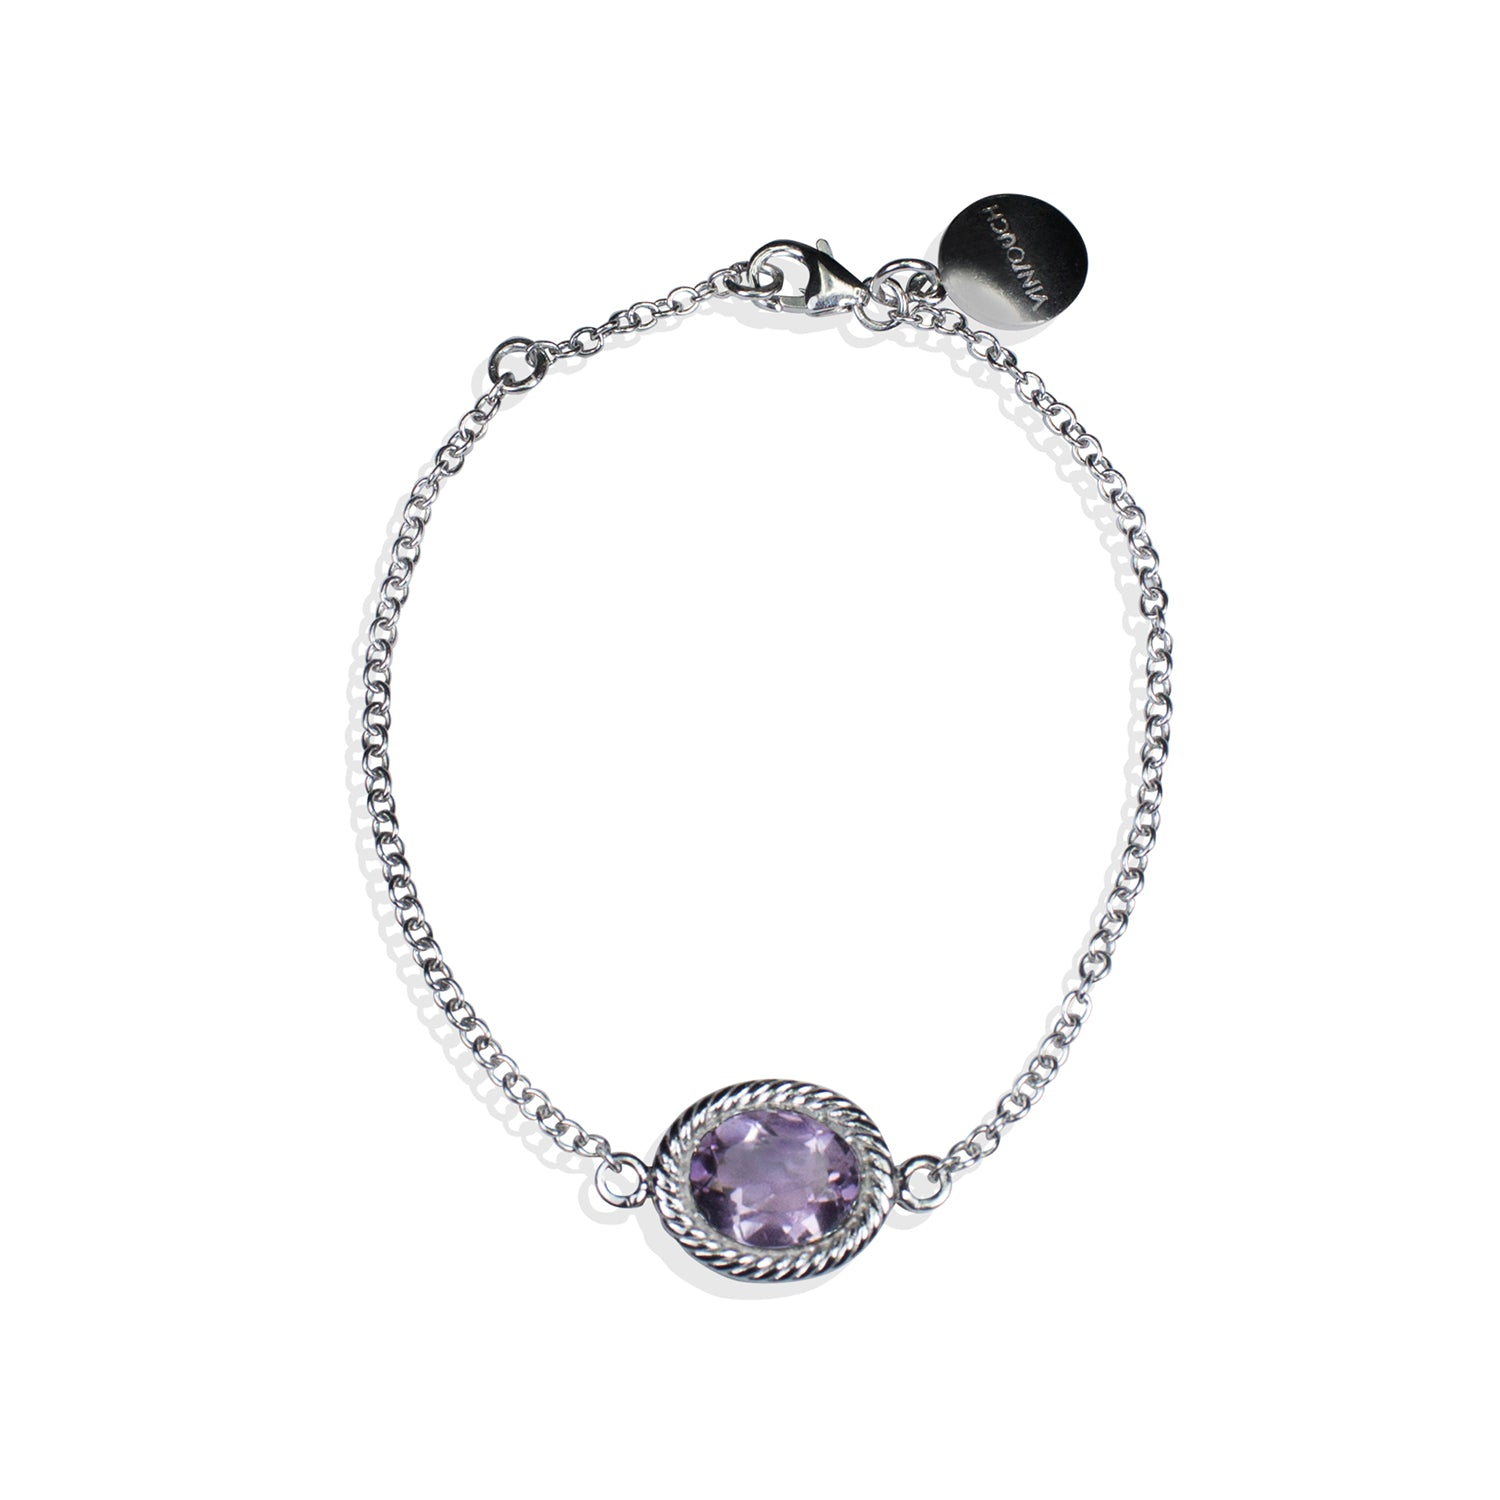 Luccichio Amethyst Silver Bracelet by Vintouch Jewels on OOSTOR.com